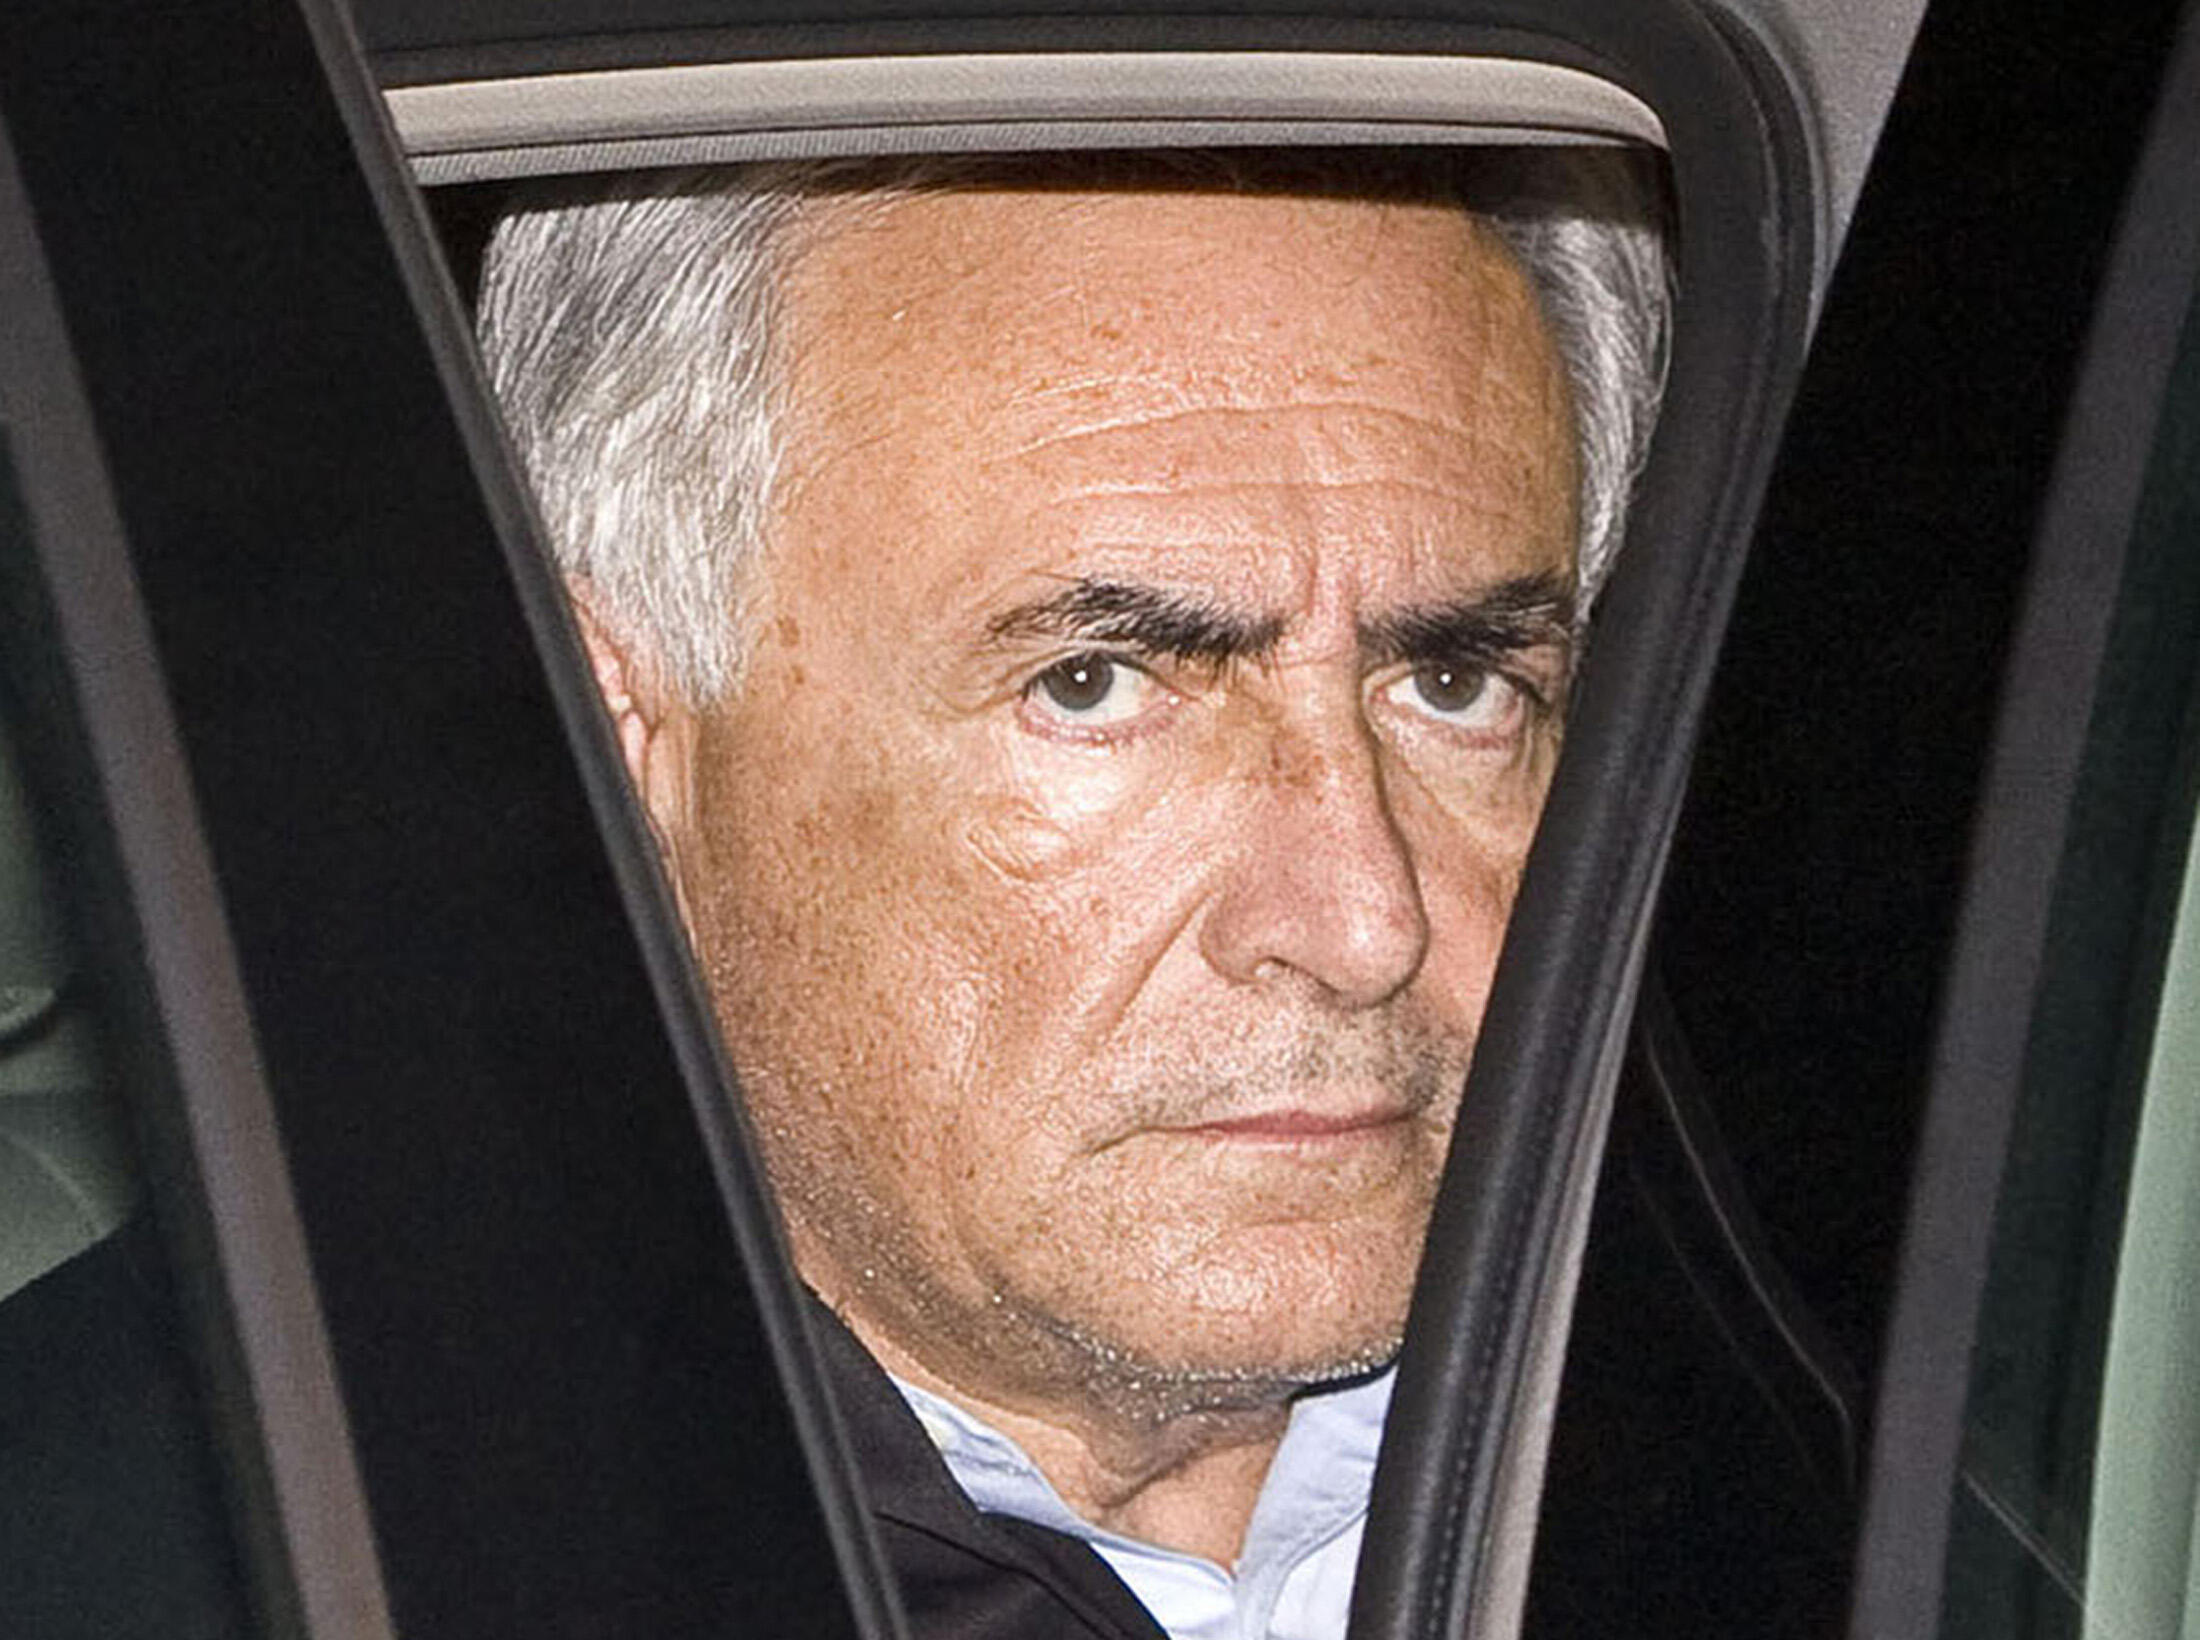 Dossier: The Strauss-Kahn affair rocks France, IMF